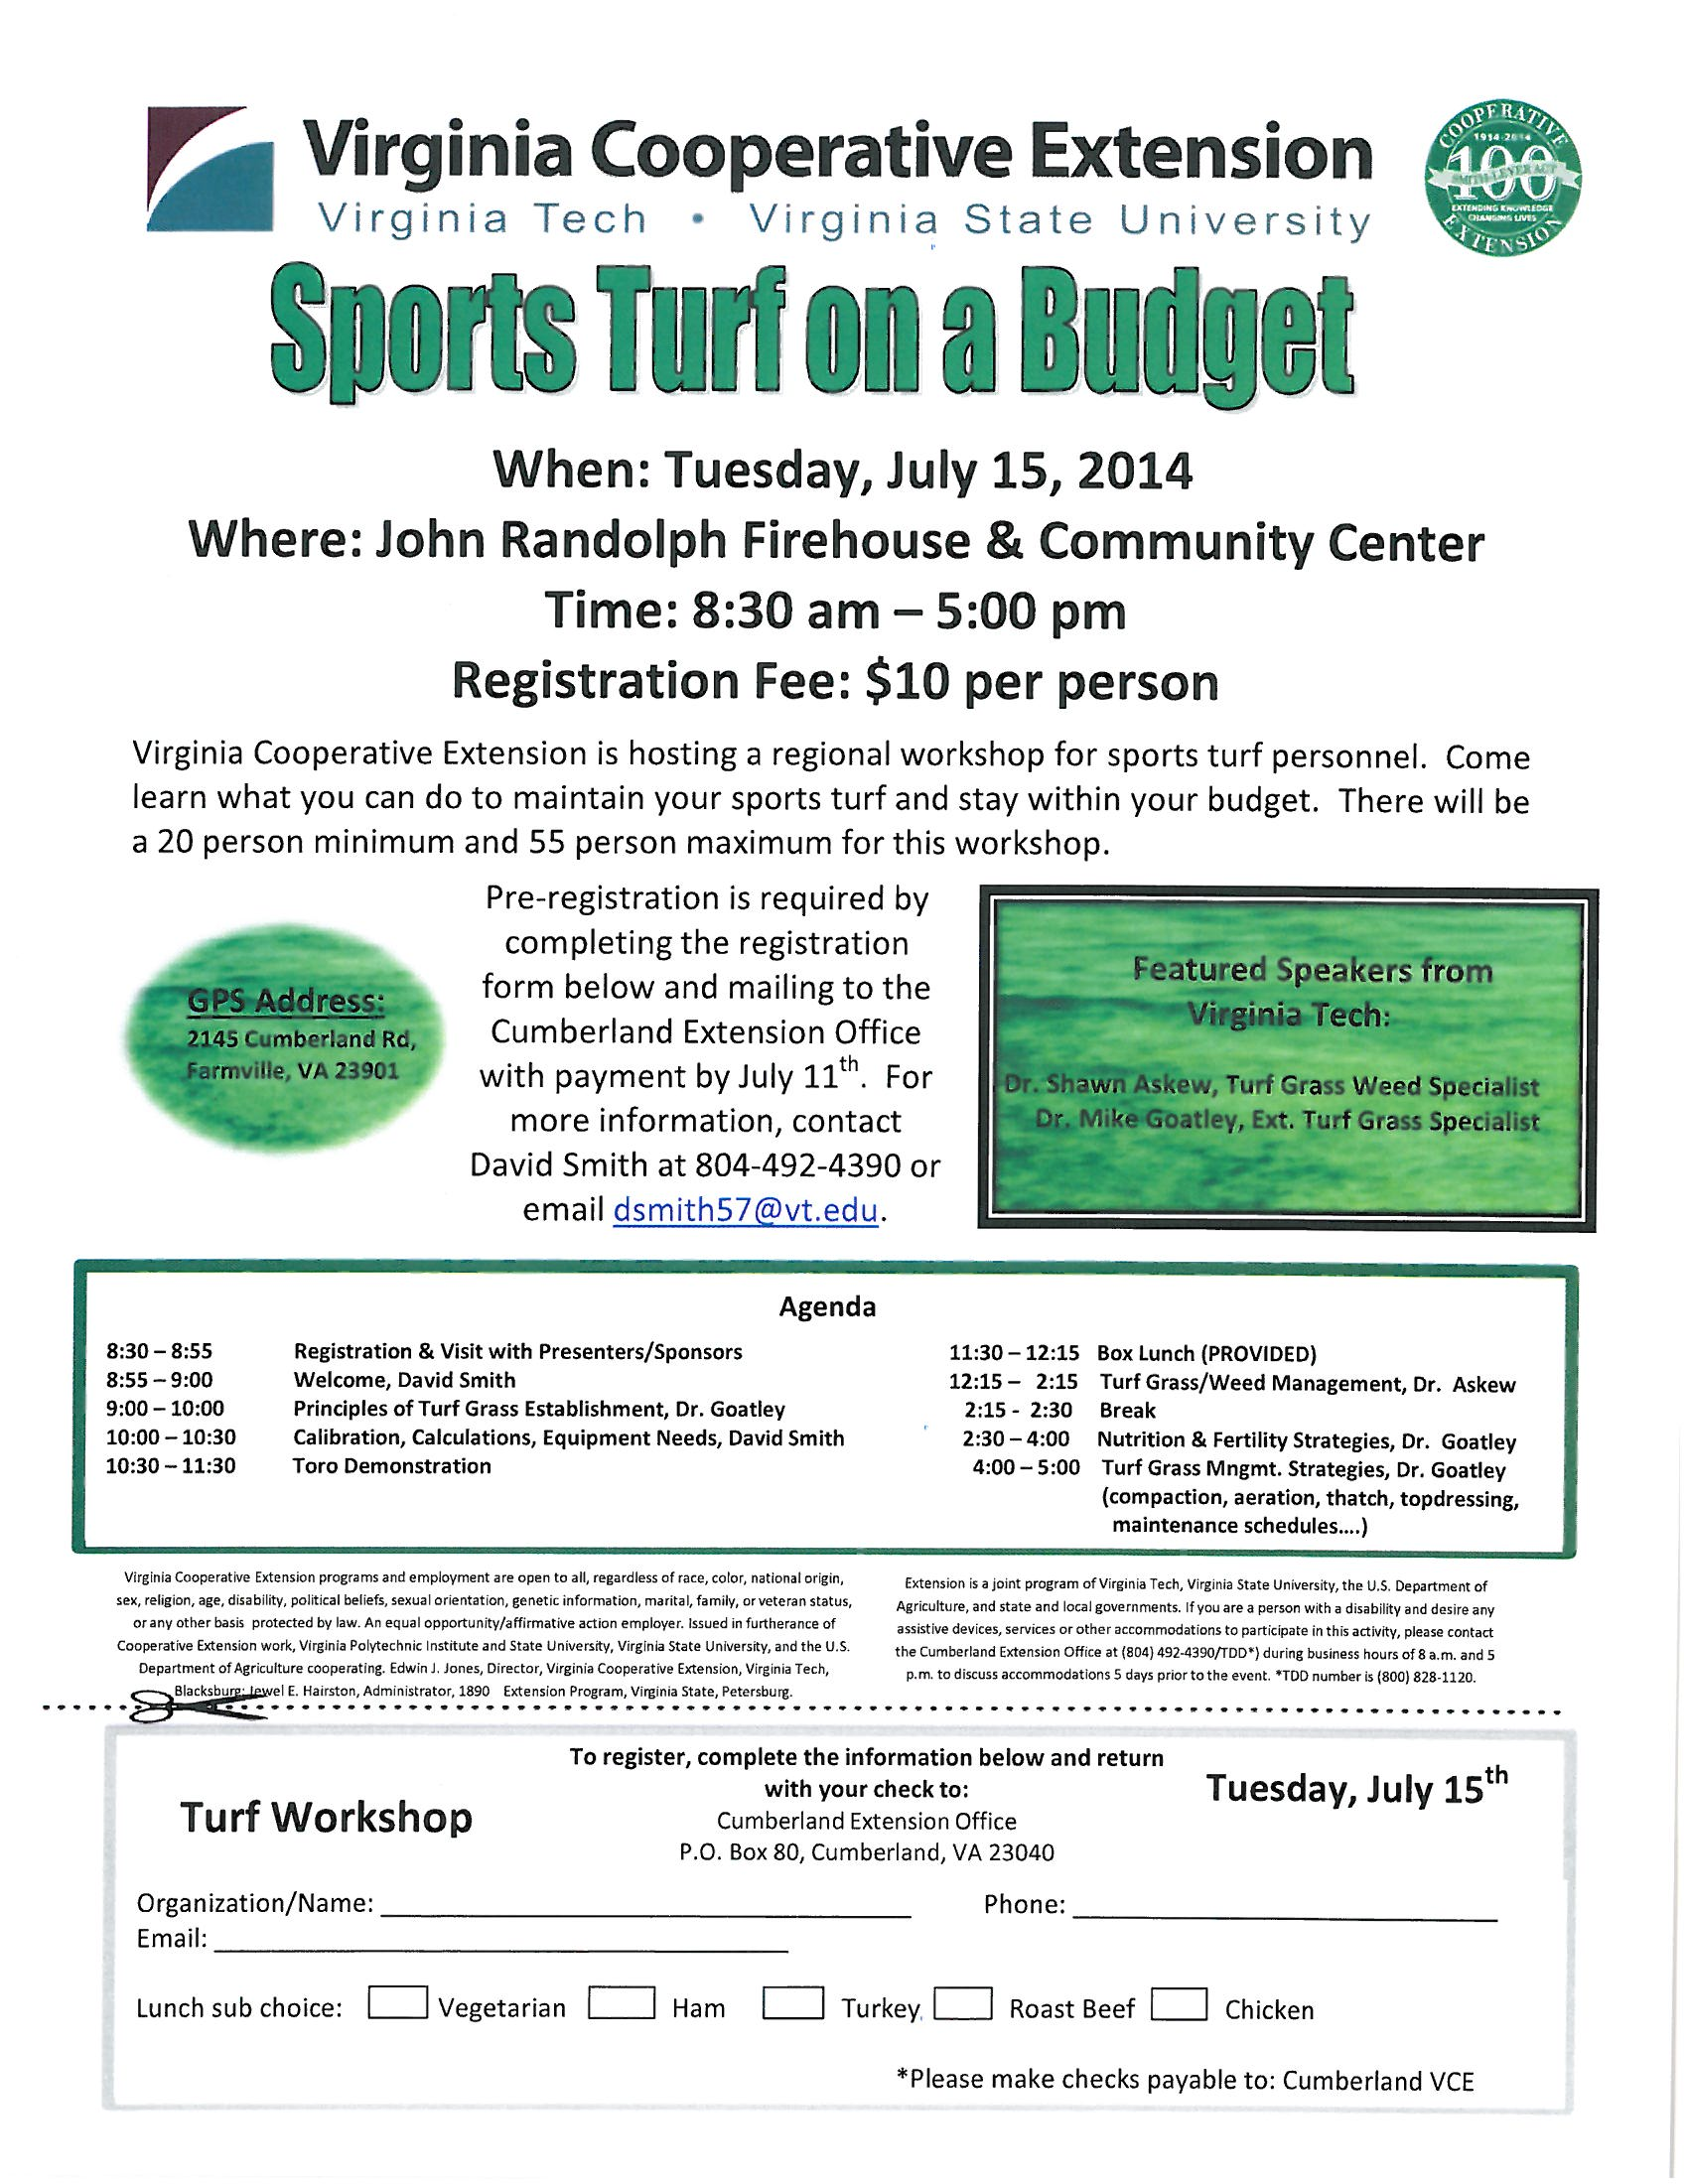 Sports Turf on a Budget Workshop